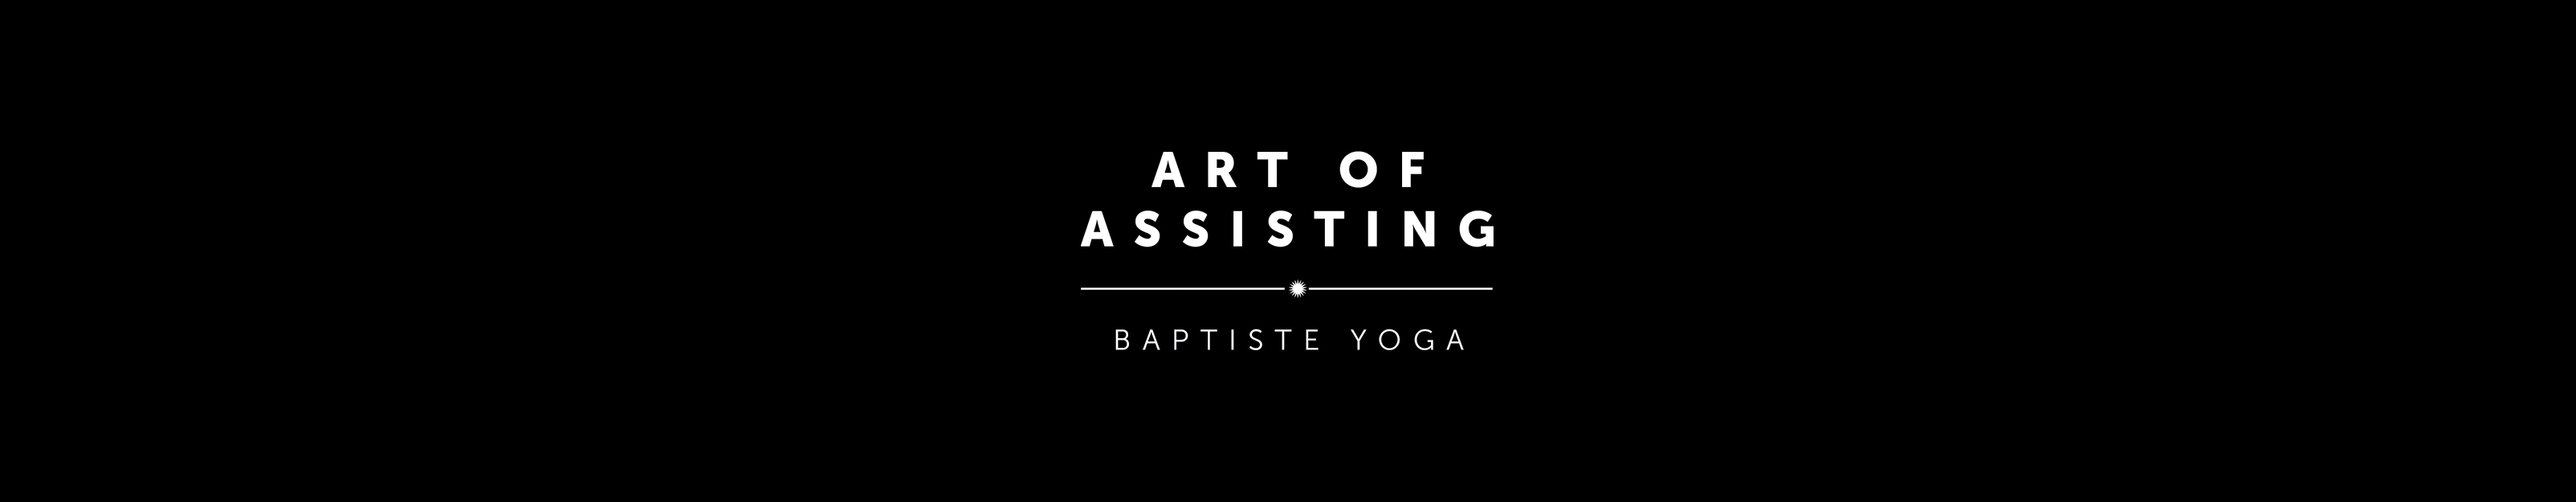 Baptiste Yoga San Francisco | Art of Assisting